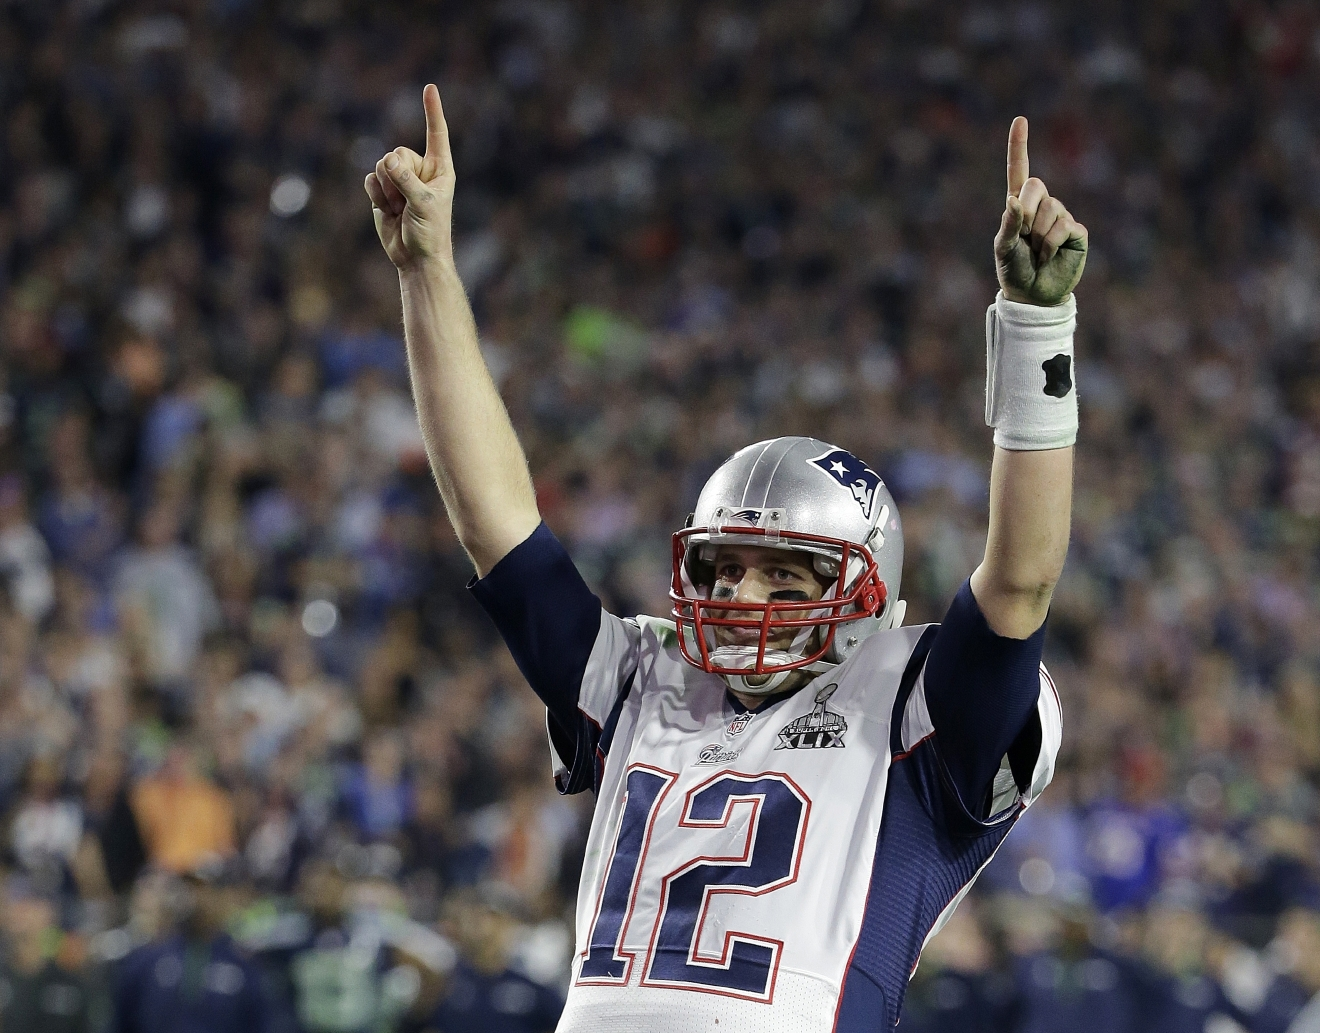 "FILE - In this Feb. 1, 2015, file photo, New England Patriots quarterback Tom Brady (12) celebrates during the second half of NFL Super Bowl XLIX football game against the Seattle Seahawks, in Glendale, Ariz. Brady's missing jersey from the Super Bowl has been found in the possession of a member of the international media.  The NFL said in a statement Monday, March 20, 2017,  that his jersey was found through the ""cooperation of the NFL and New England Patriots' security teams, the FBI and other law enforcement authorities."" Brady said his jersey went missing after the Patriots' 34-28 win last month over the Atlanta Falcons.  The statement also said an ongoing investigation retrieved the jersey Brady wore in the Patriots' 2015 Super Bowl win against the Seahawks. (AP Photo/Kathy Willens, File)"